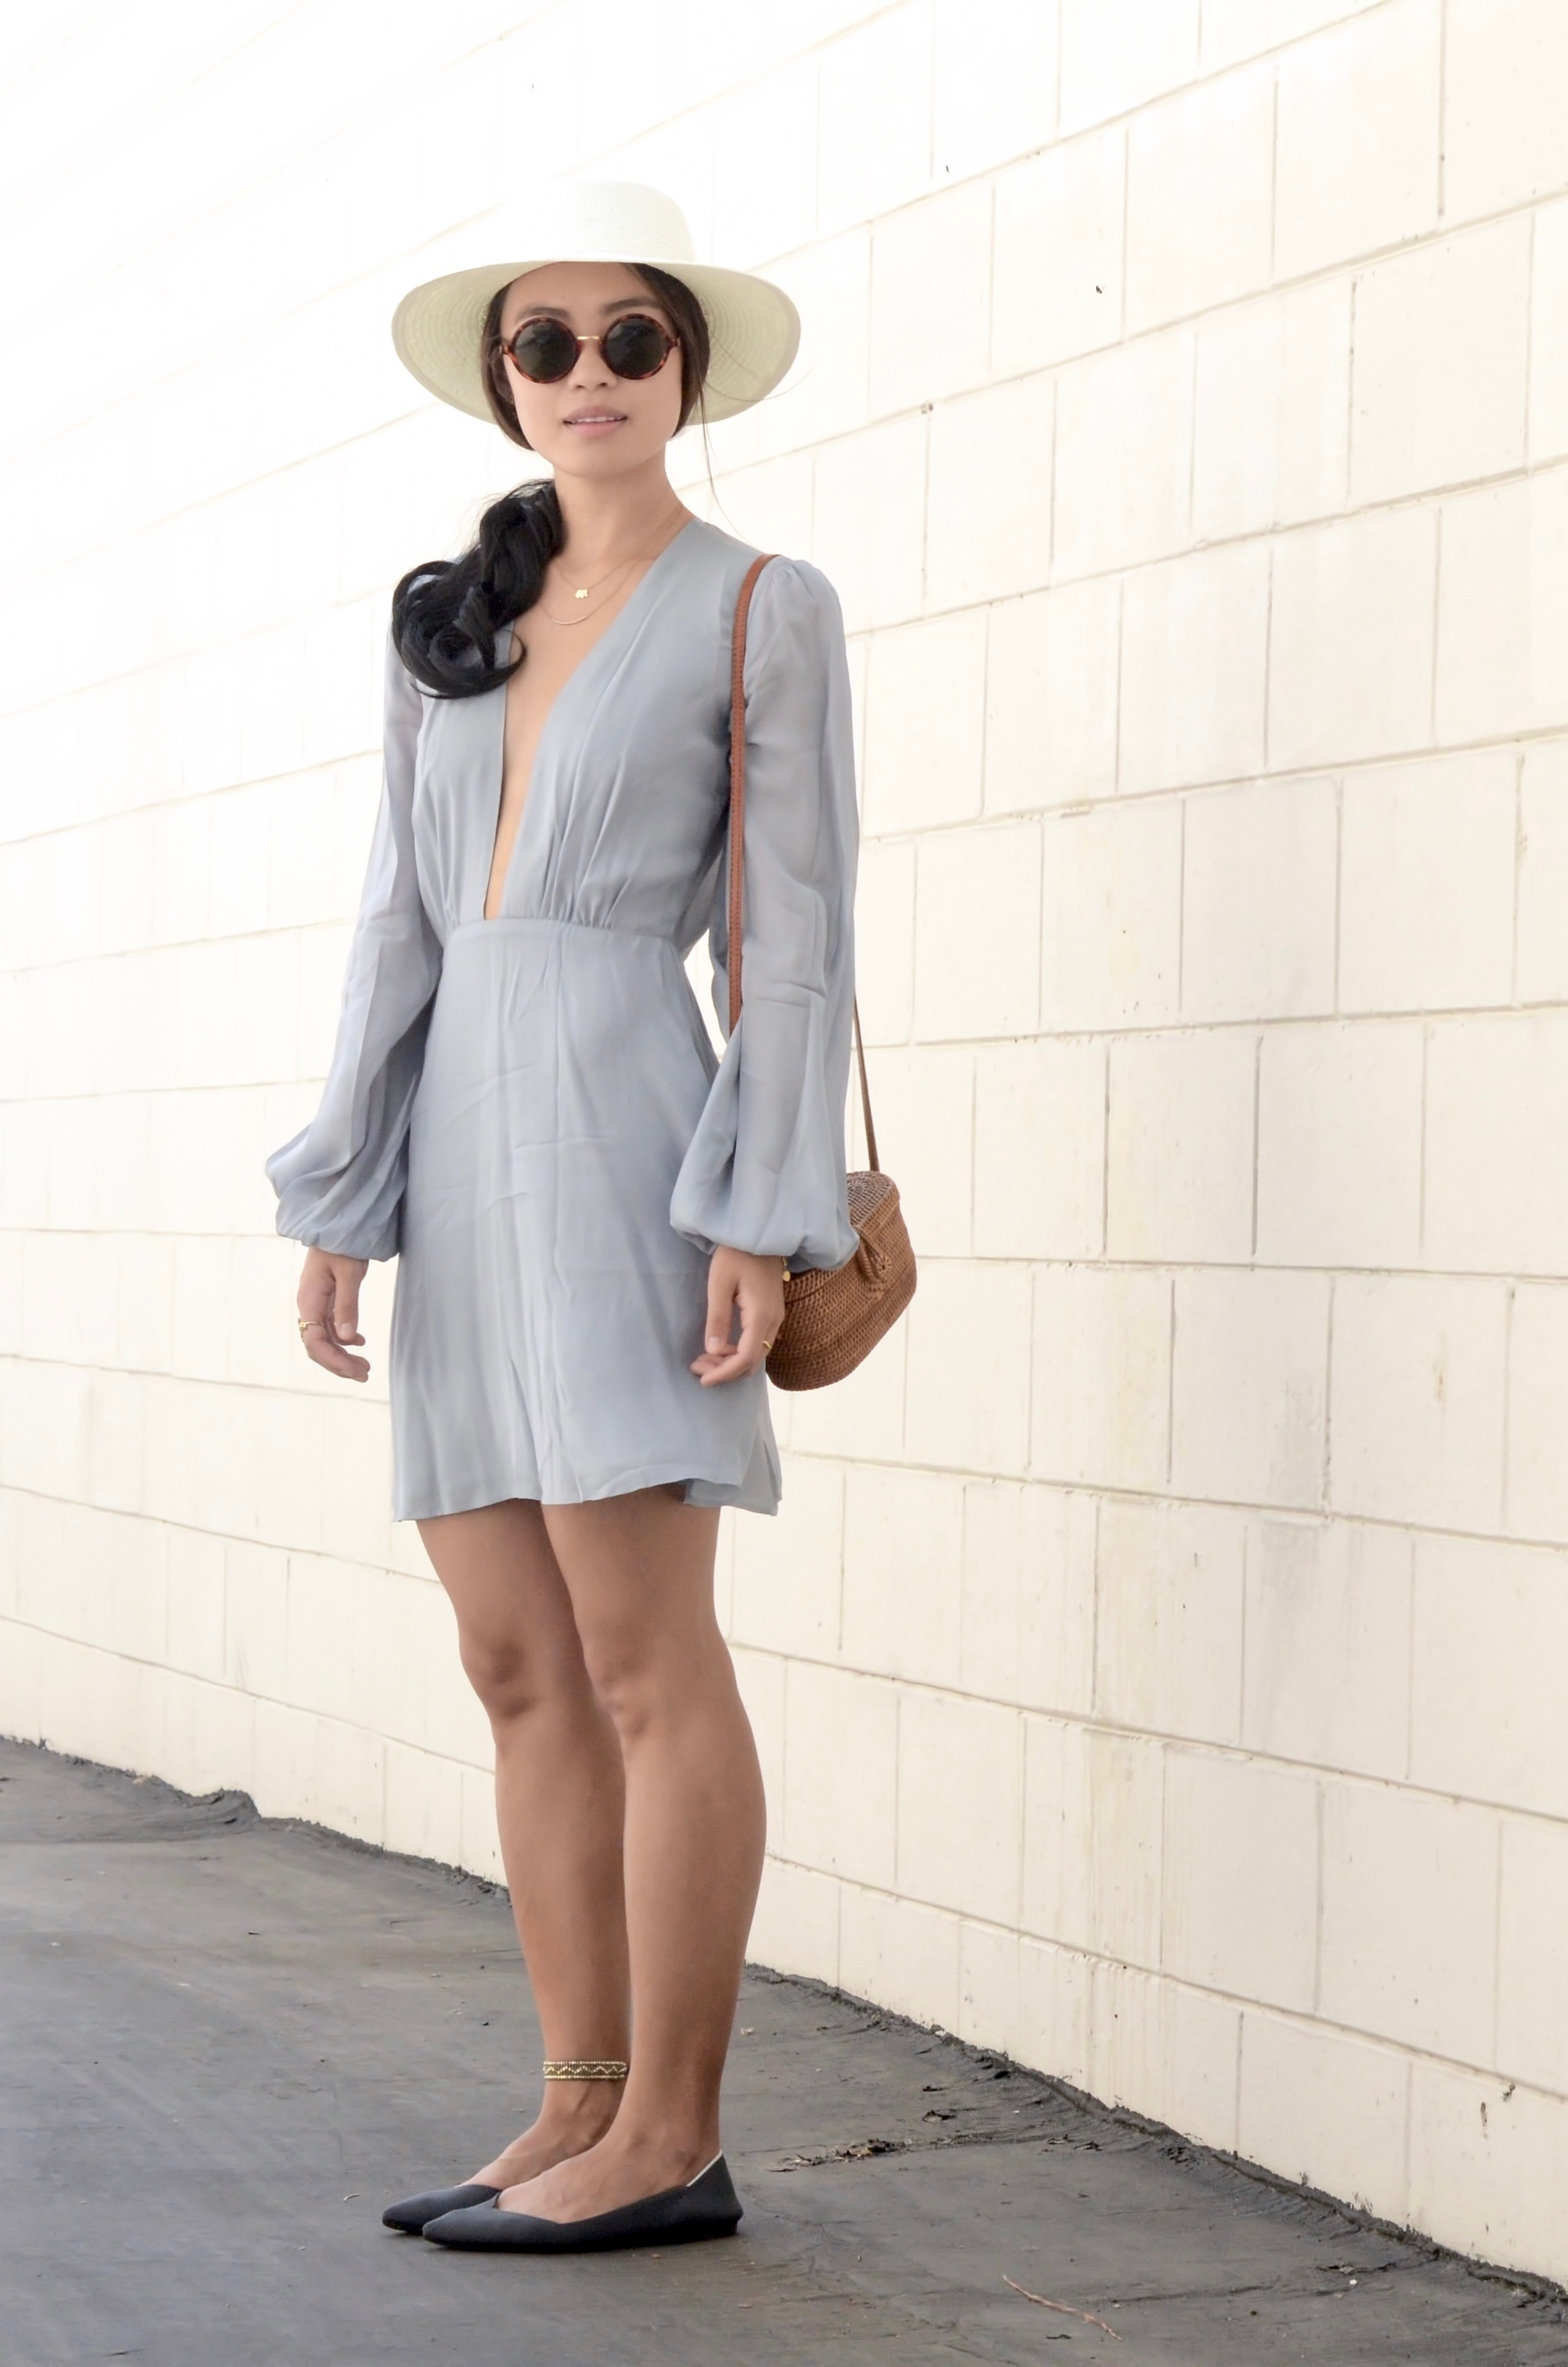 Click image for link to this dress